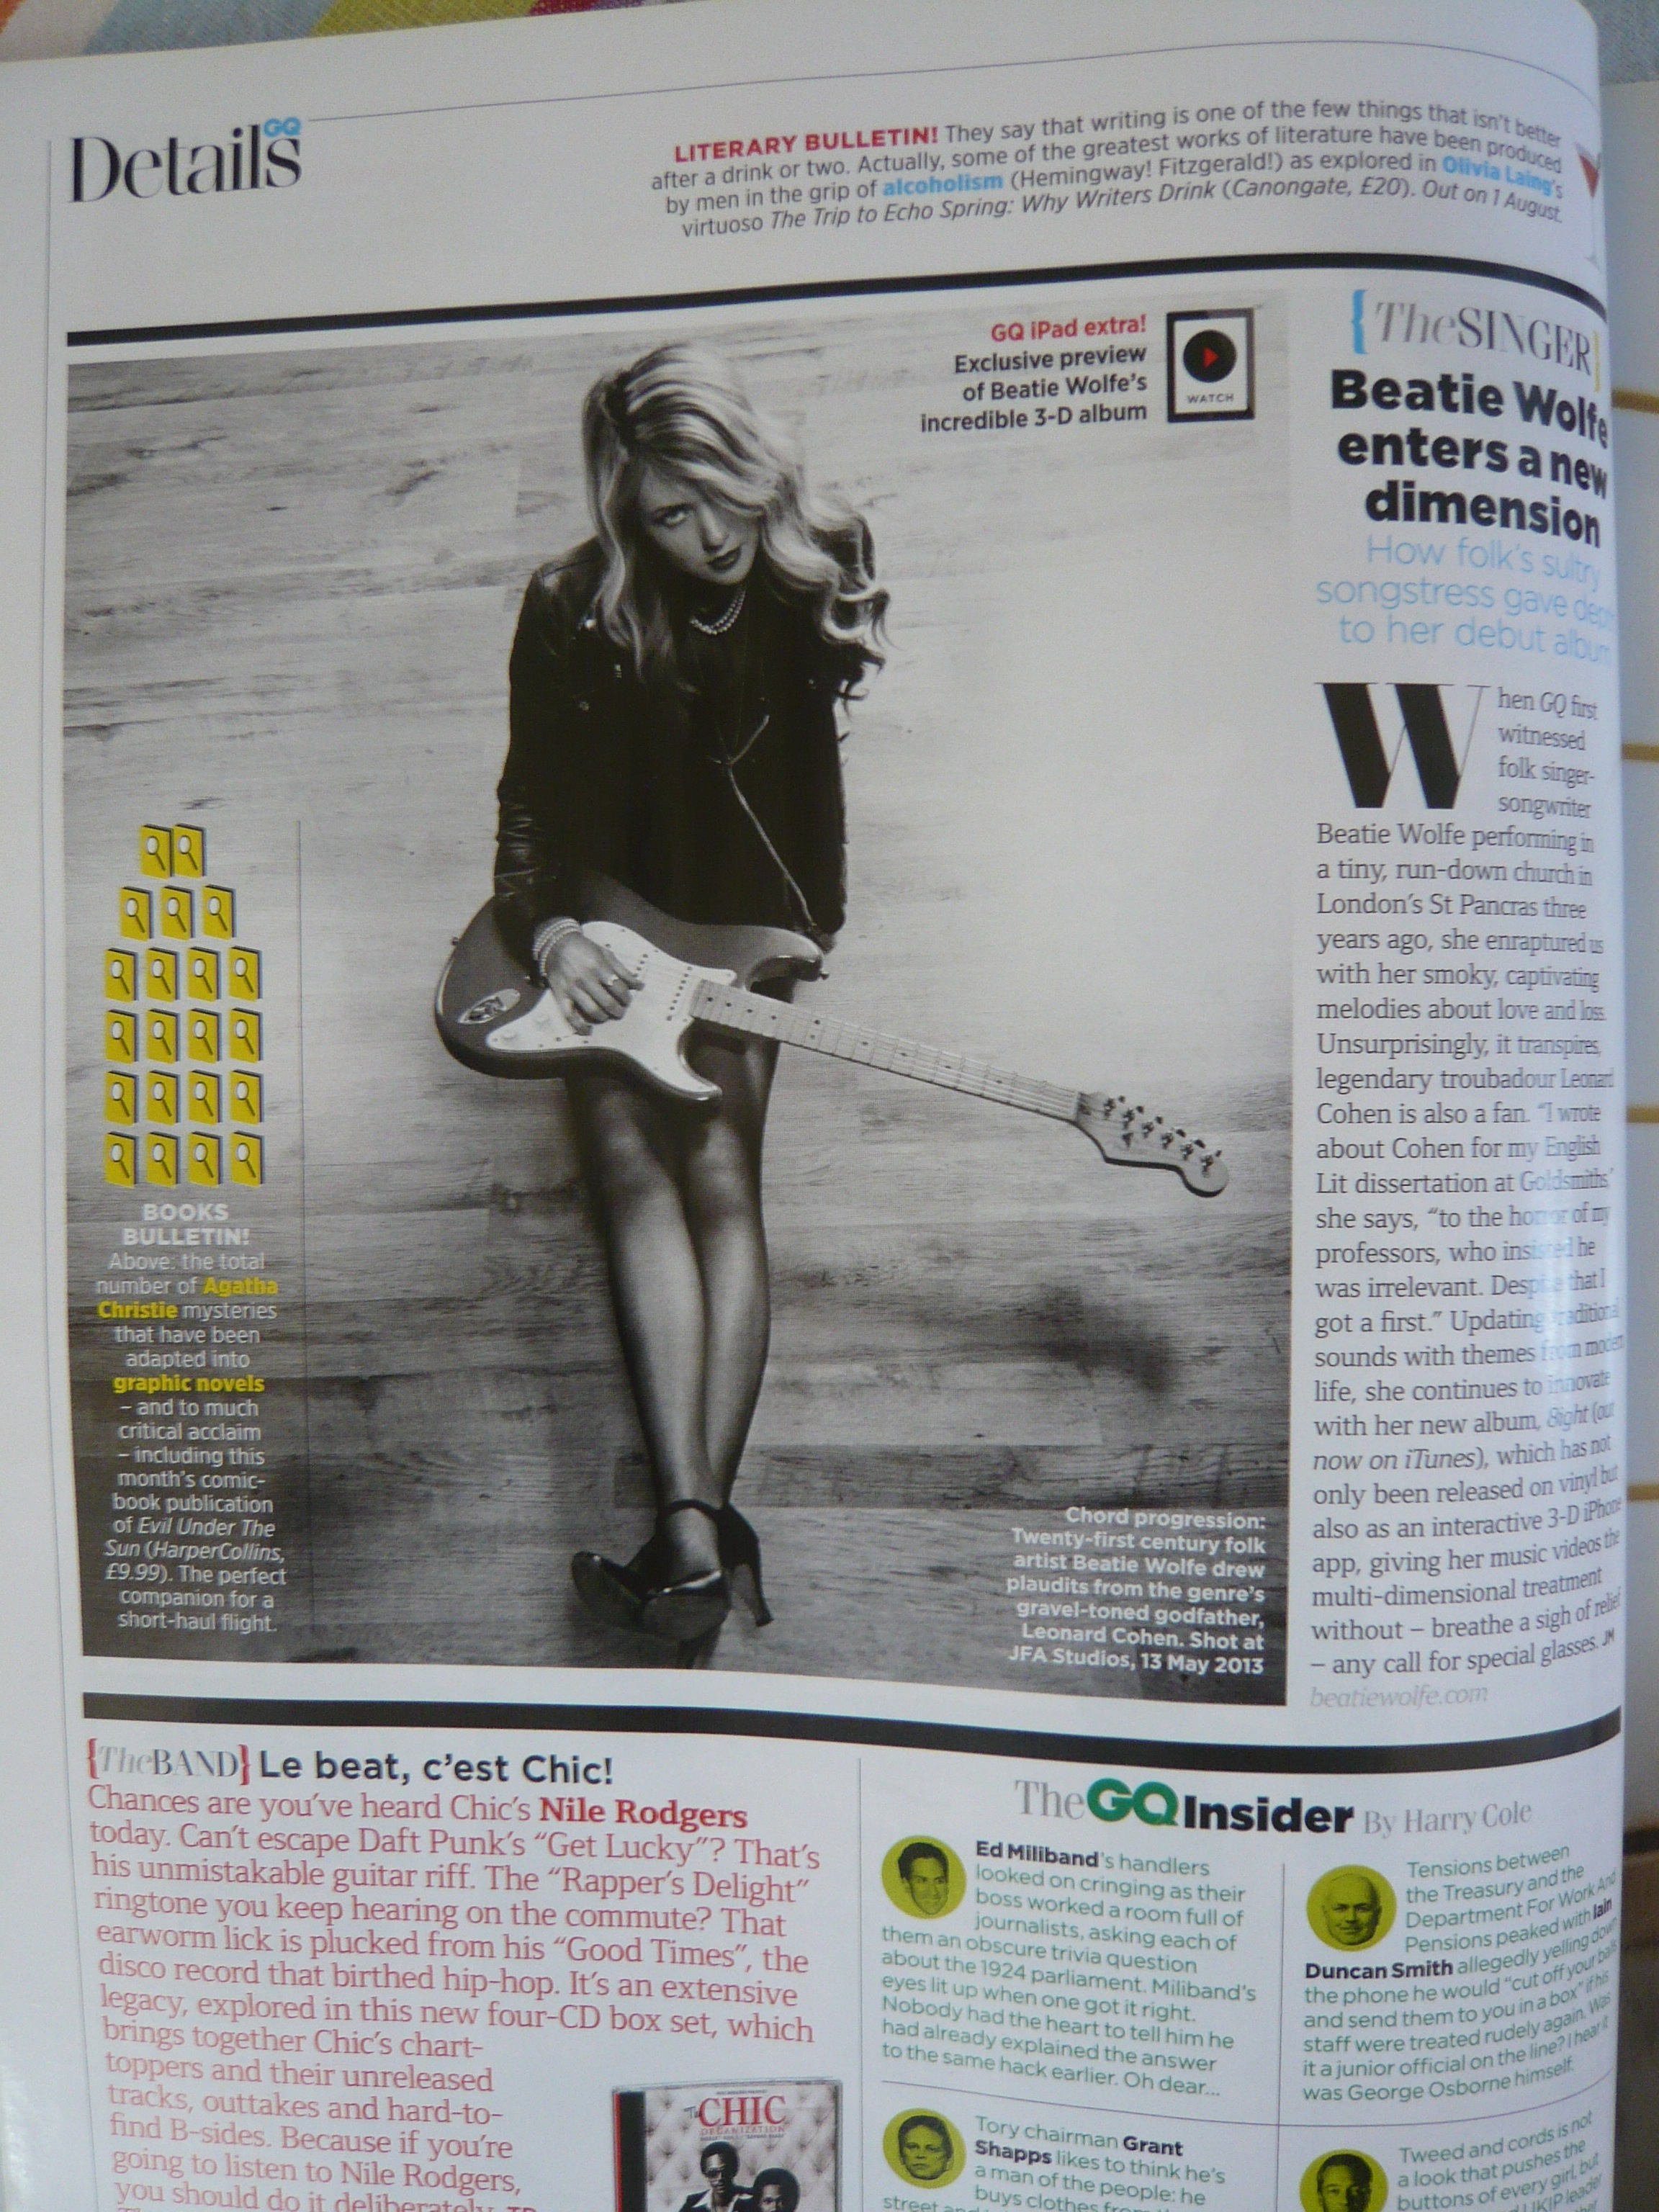 20130702 British GQ August Edition a Music Special Beatie Wolfe image and article.jpg